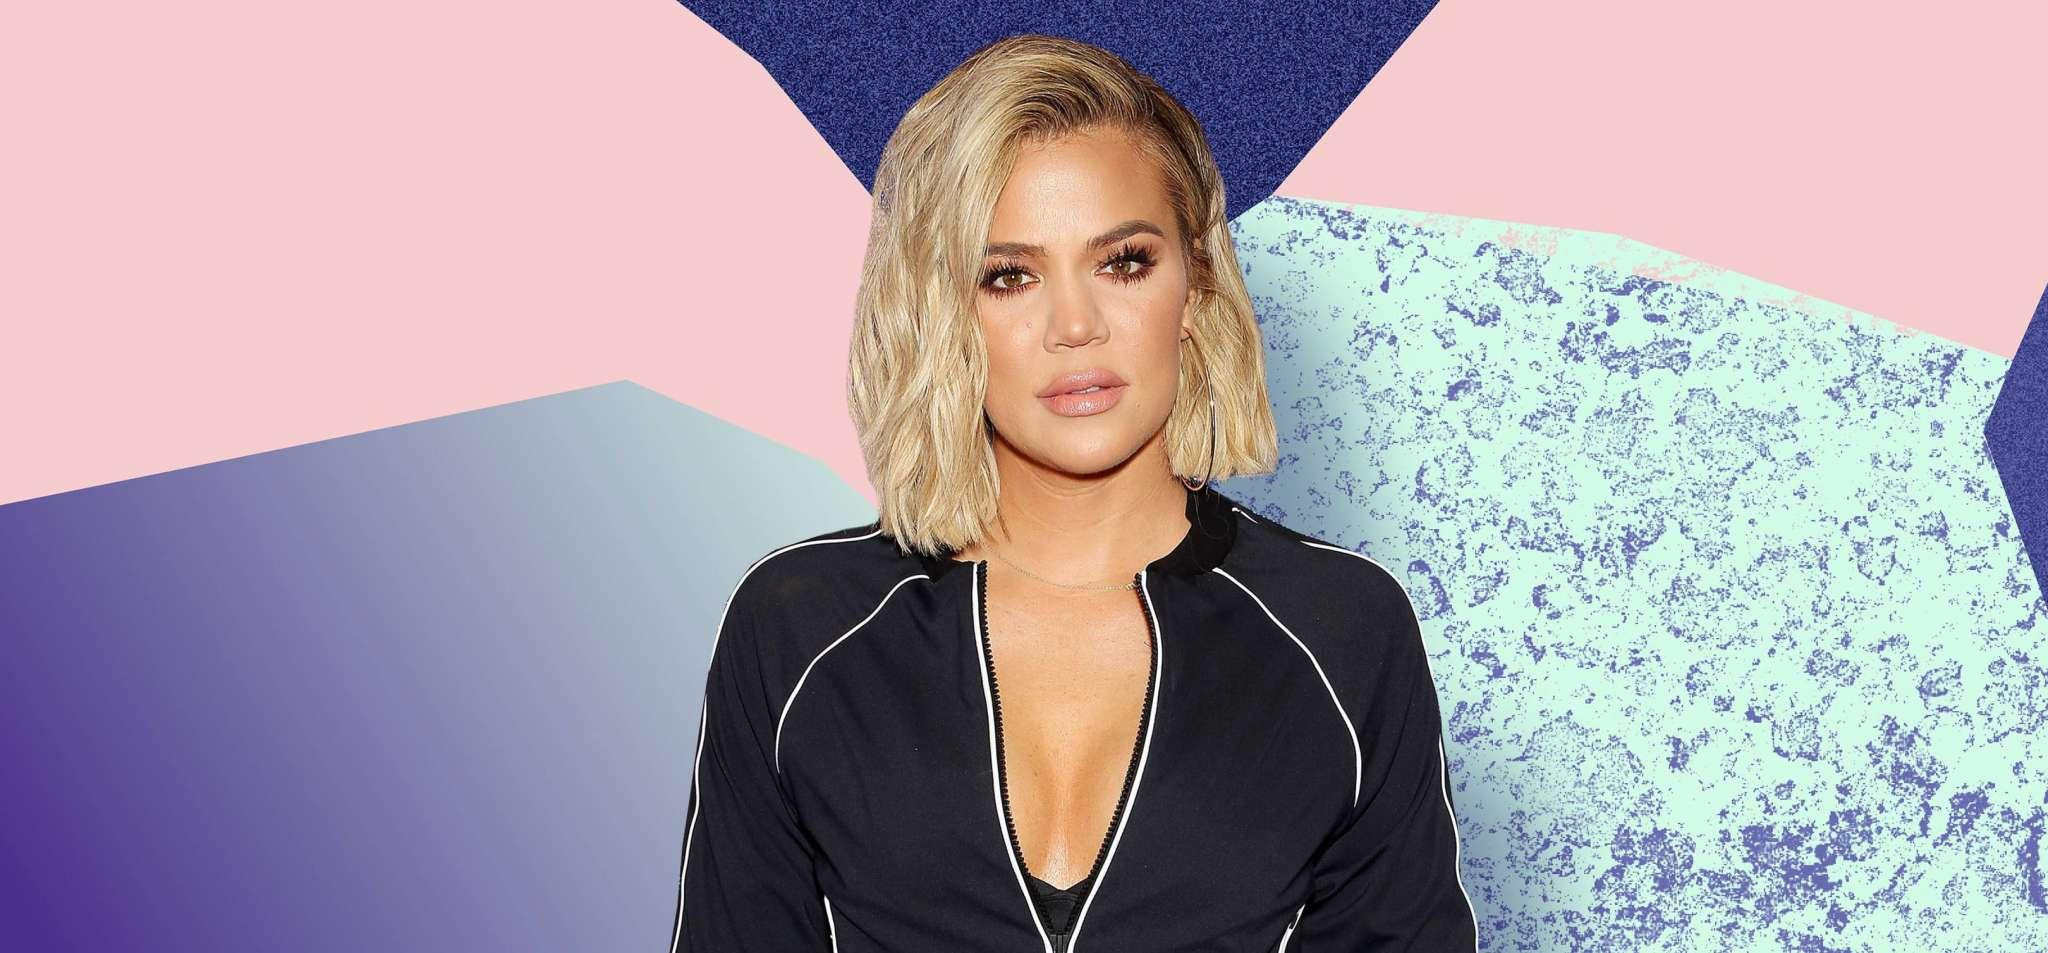 Khloe Kardashian Could Reportedly Forgive Tristan Thompson And Take Him Back